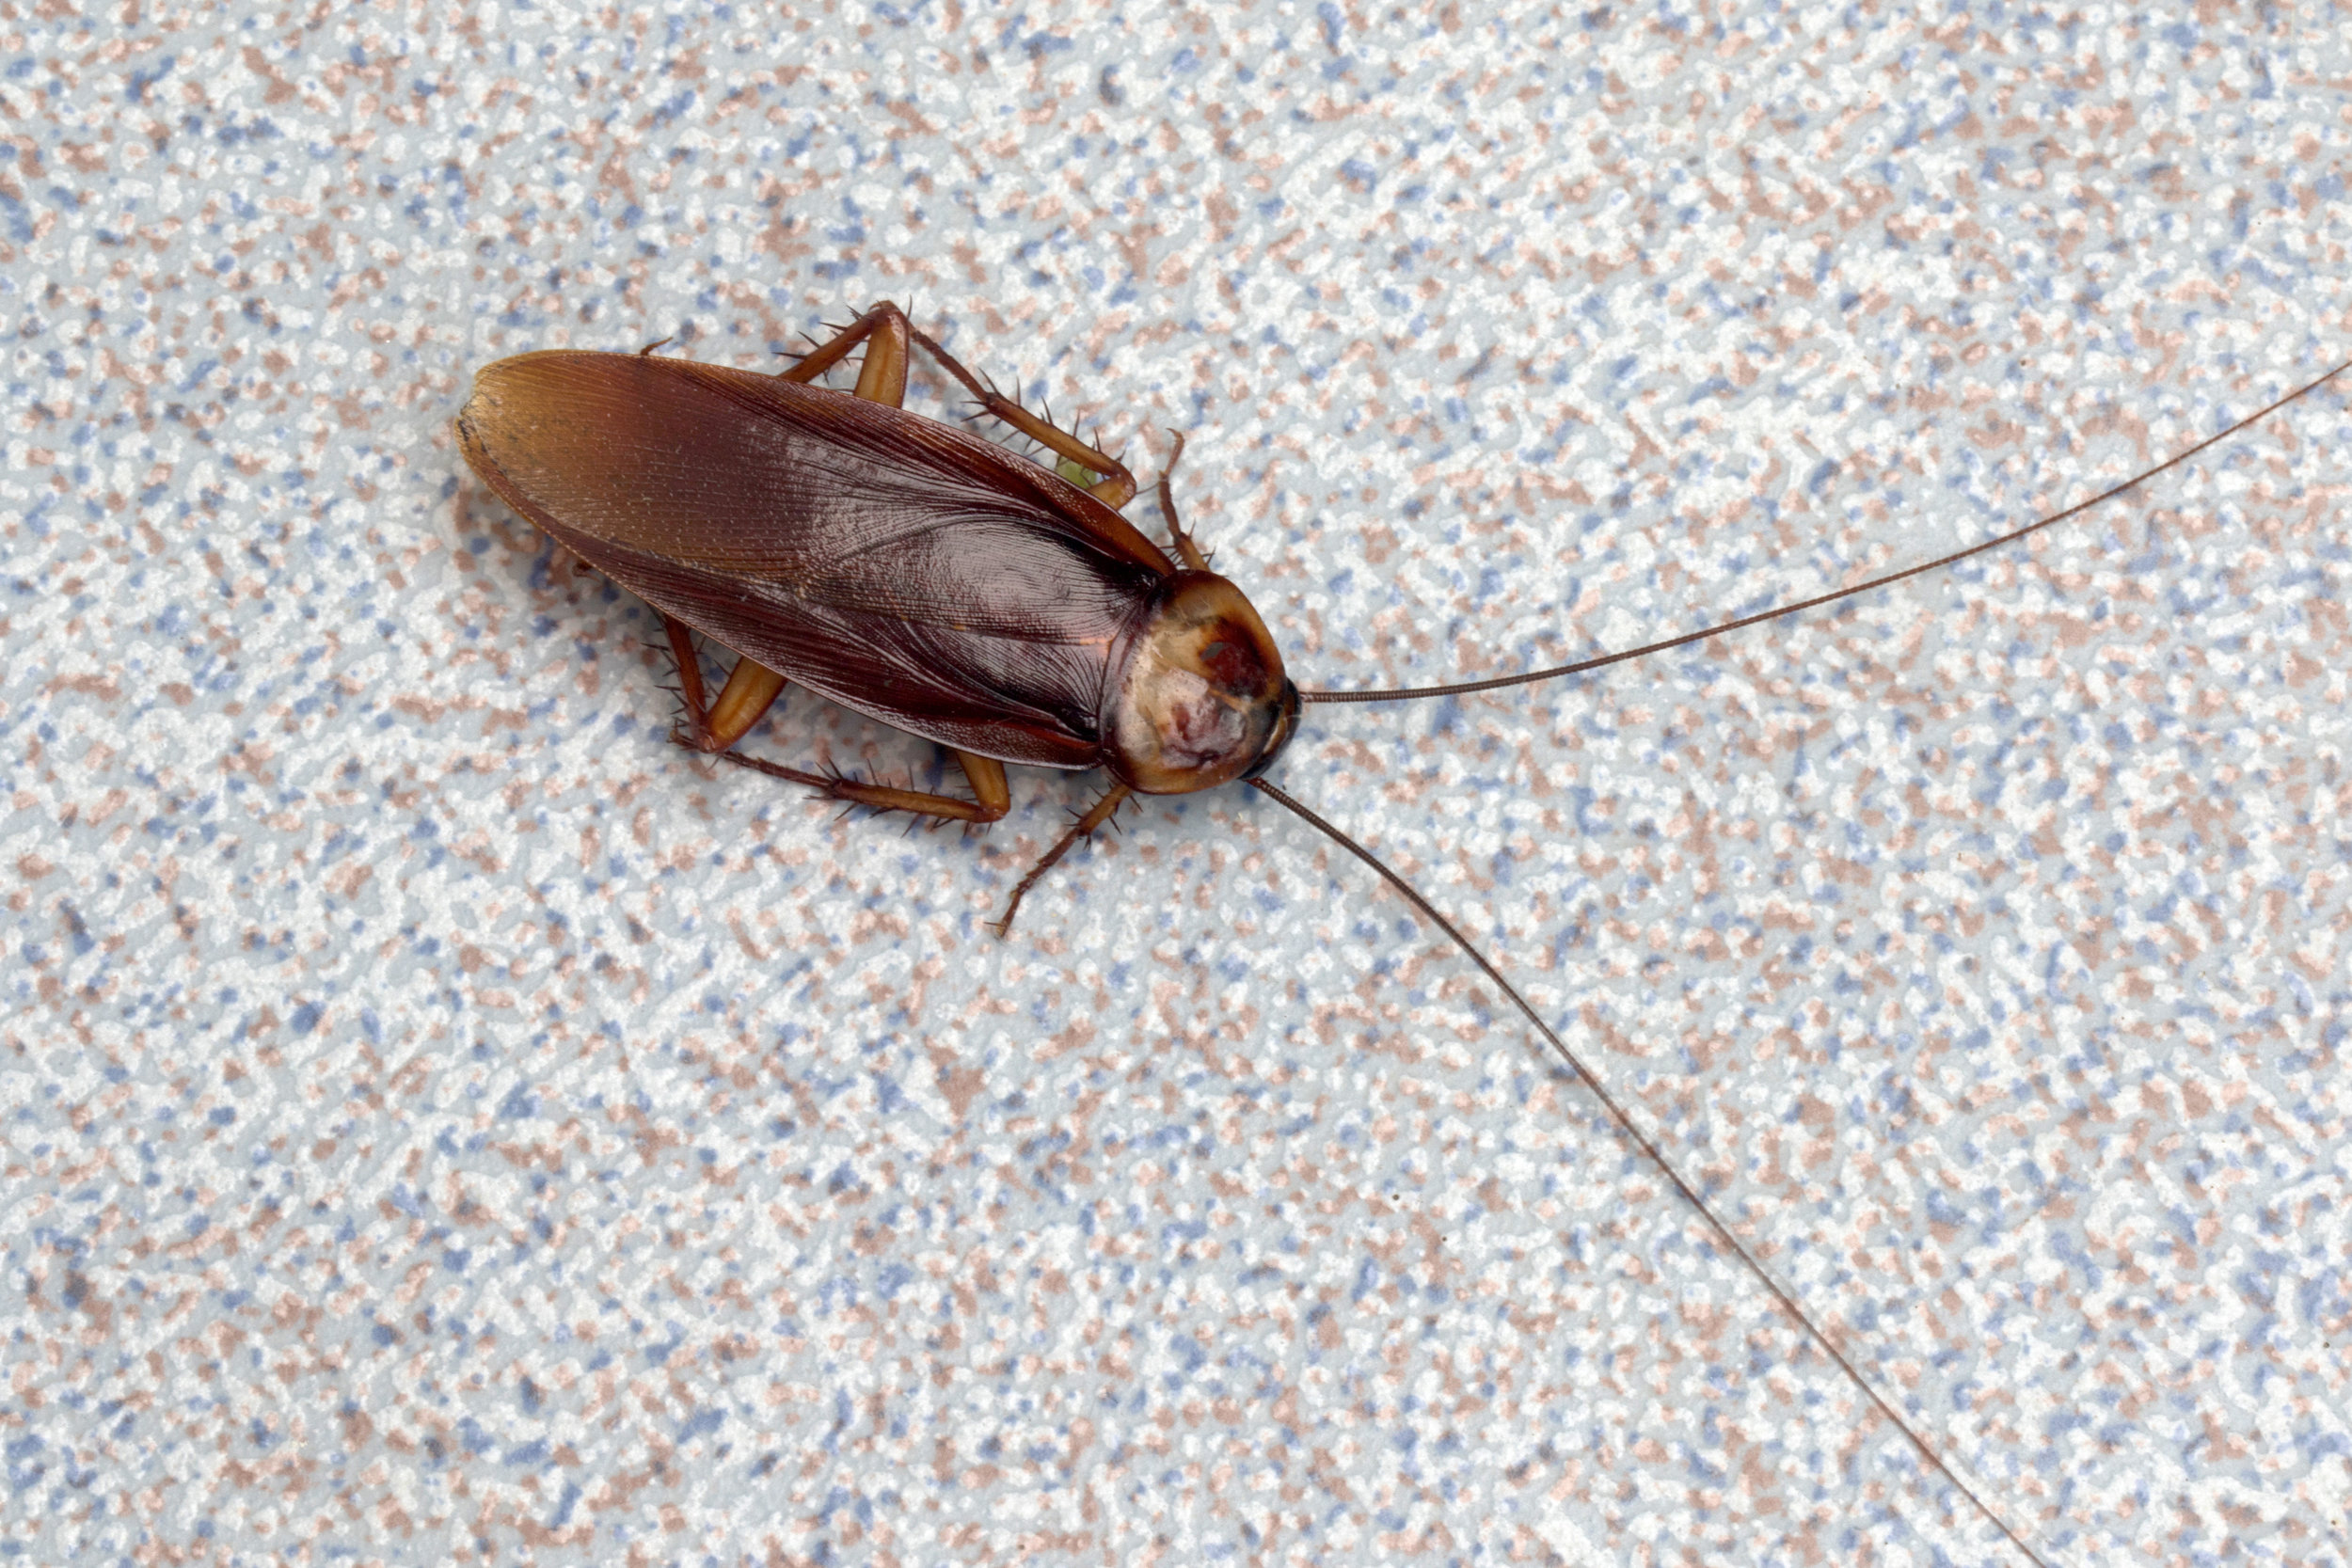 Hire an Exterminator to Get Rid of Roaches in Huntington, NY